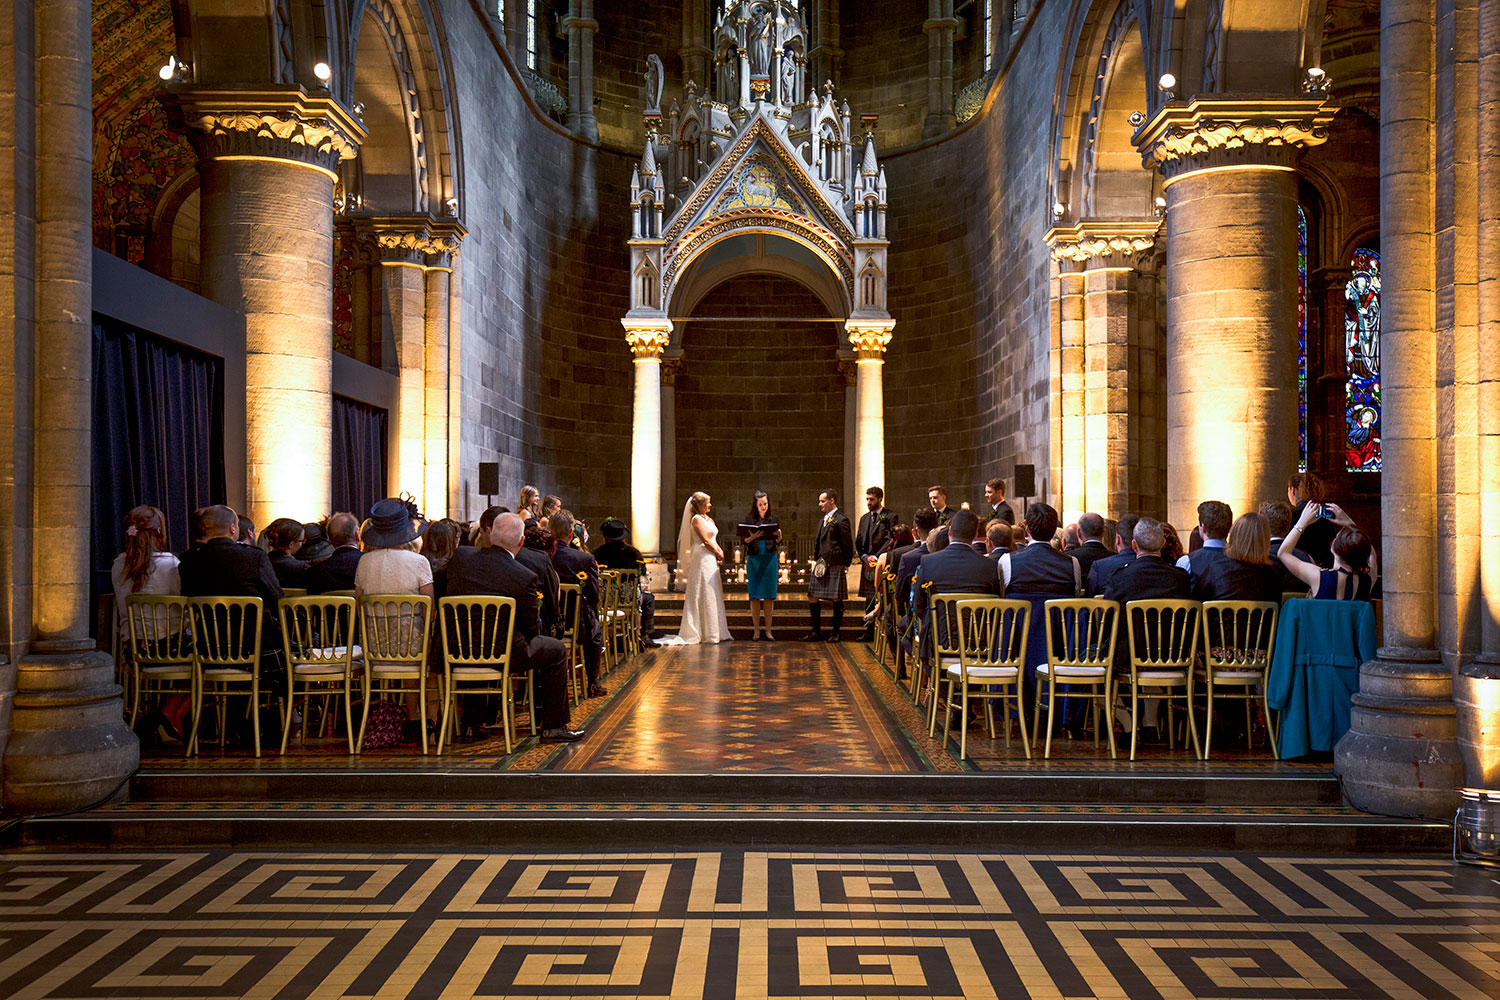 As the room is so big, I could easily slip off to the side and then make my way behind the congregation to take photographs of the big room in all its beauty, best spot for the photographer during the wedding ceremony